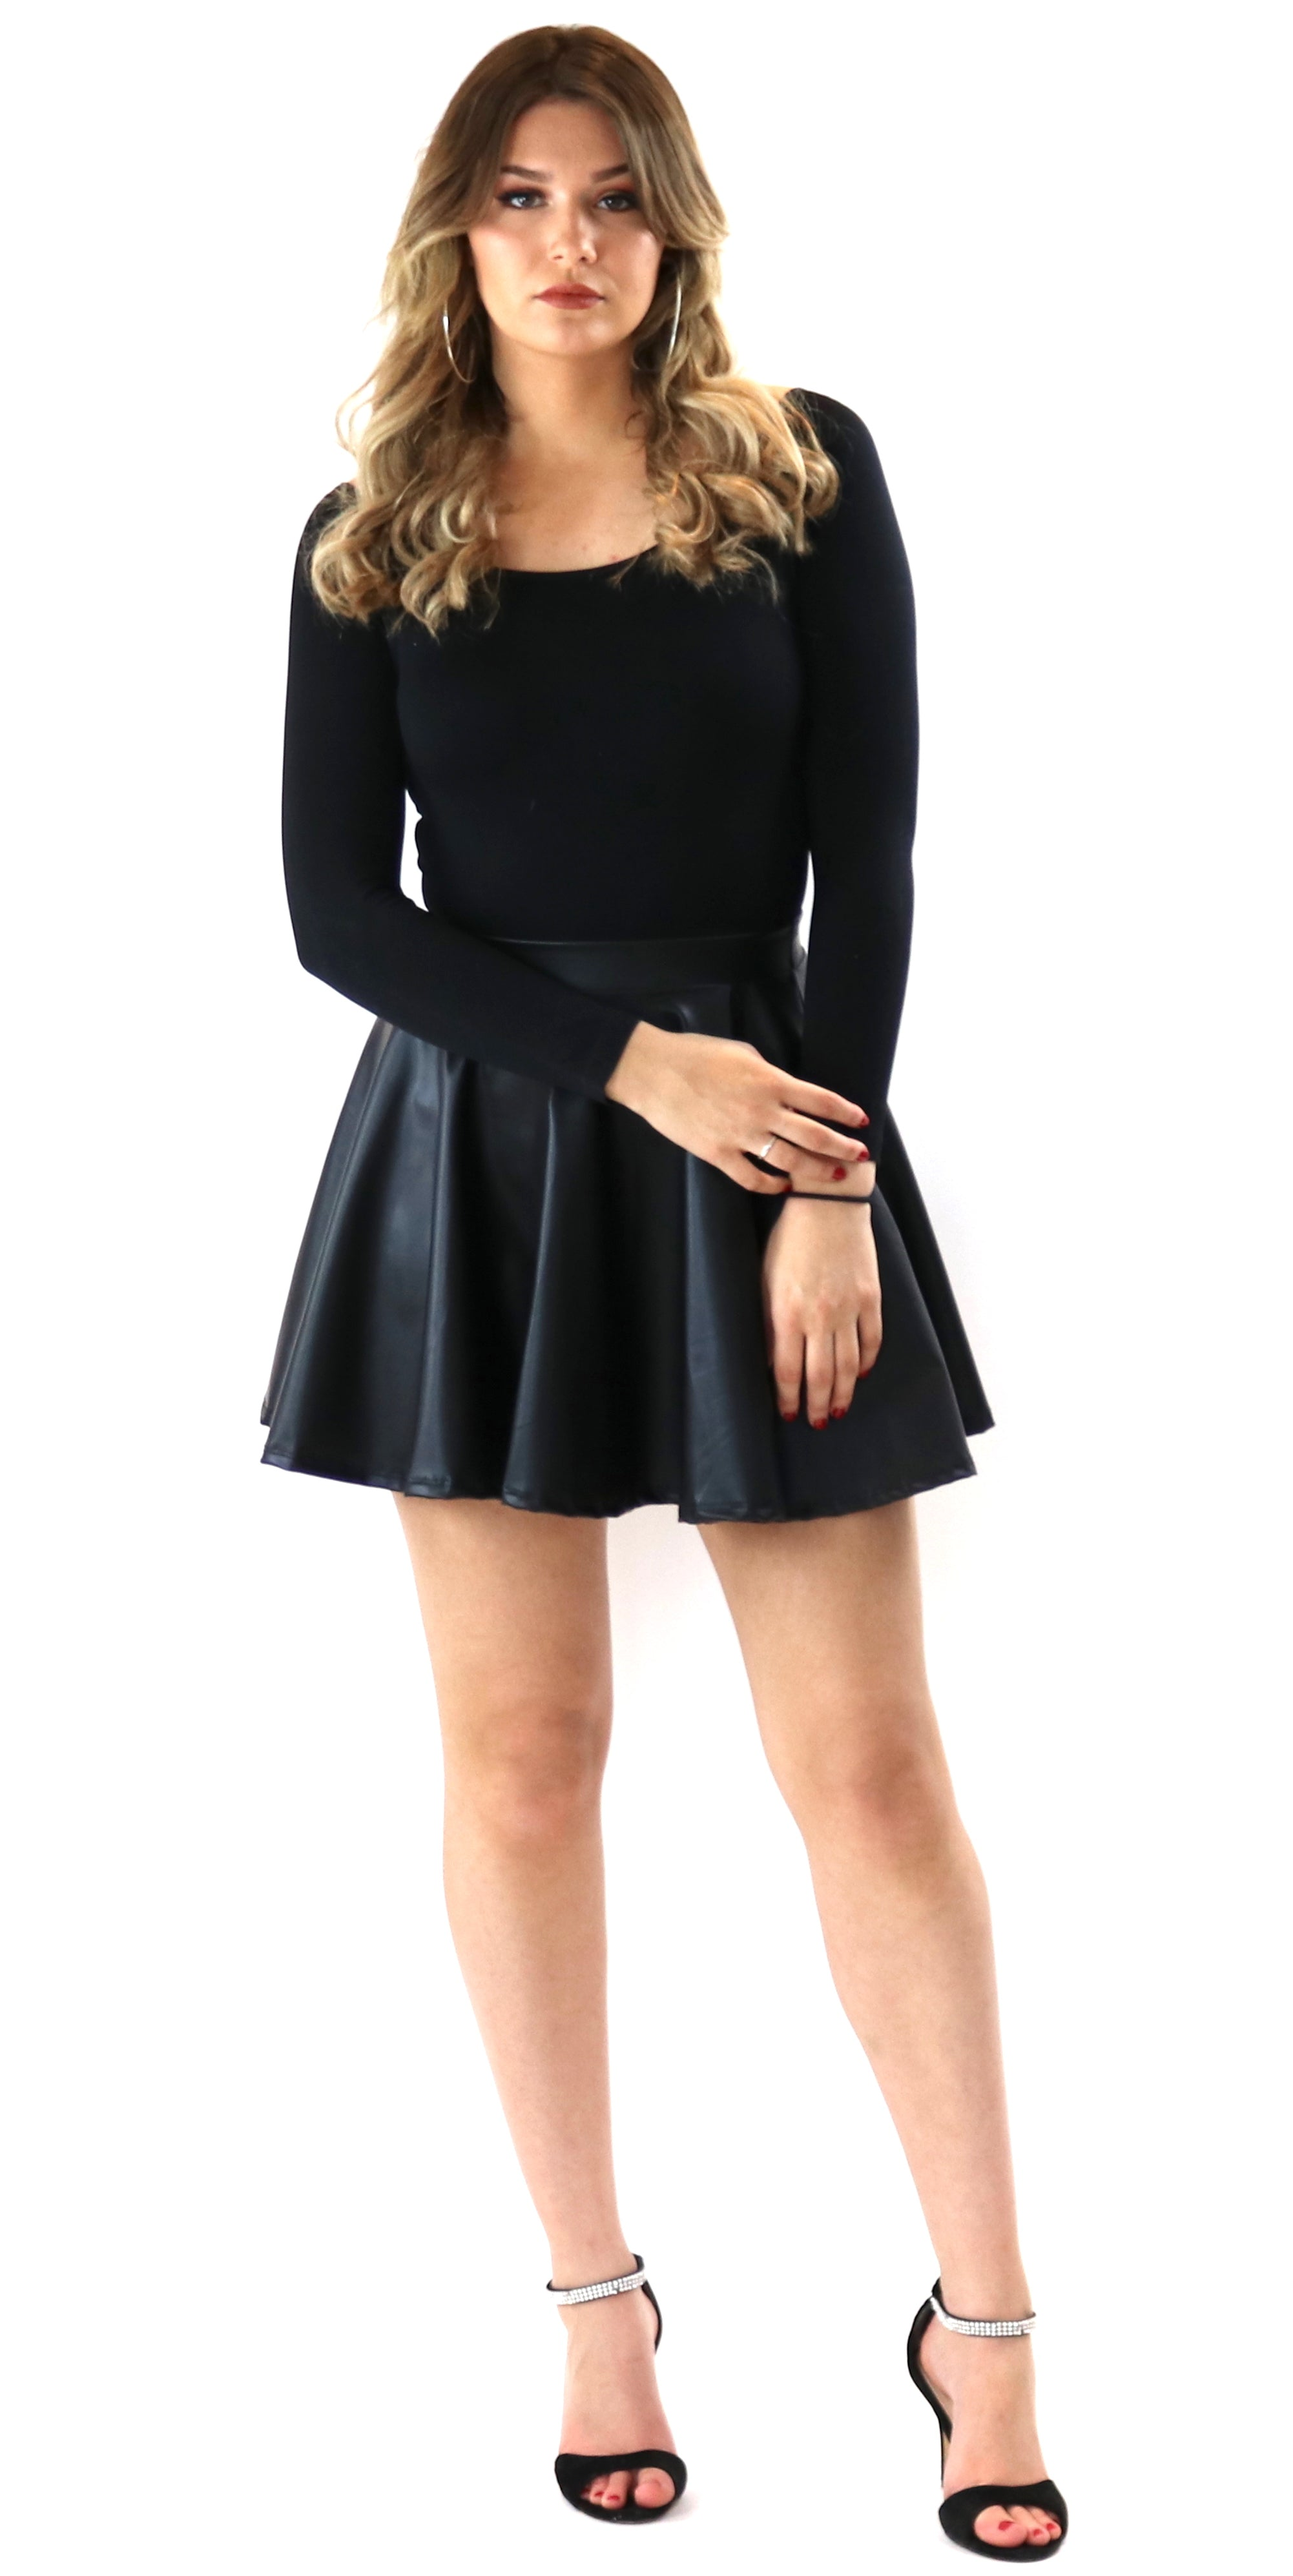 faux leather skirt bodysuit black fashion style trend clothes clothing